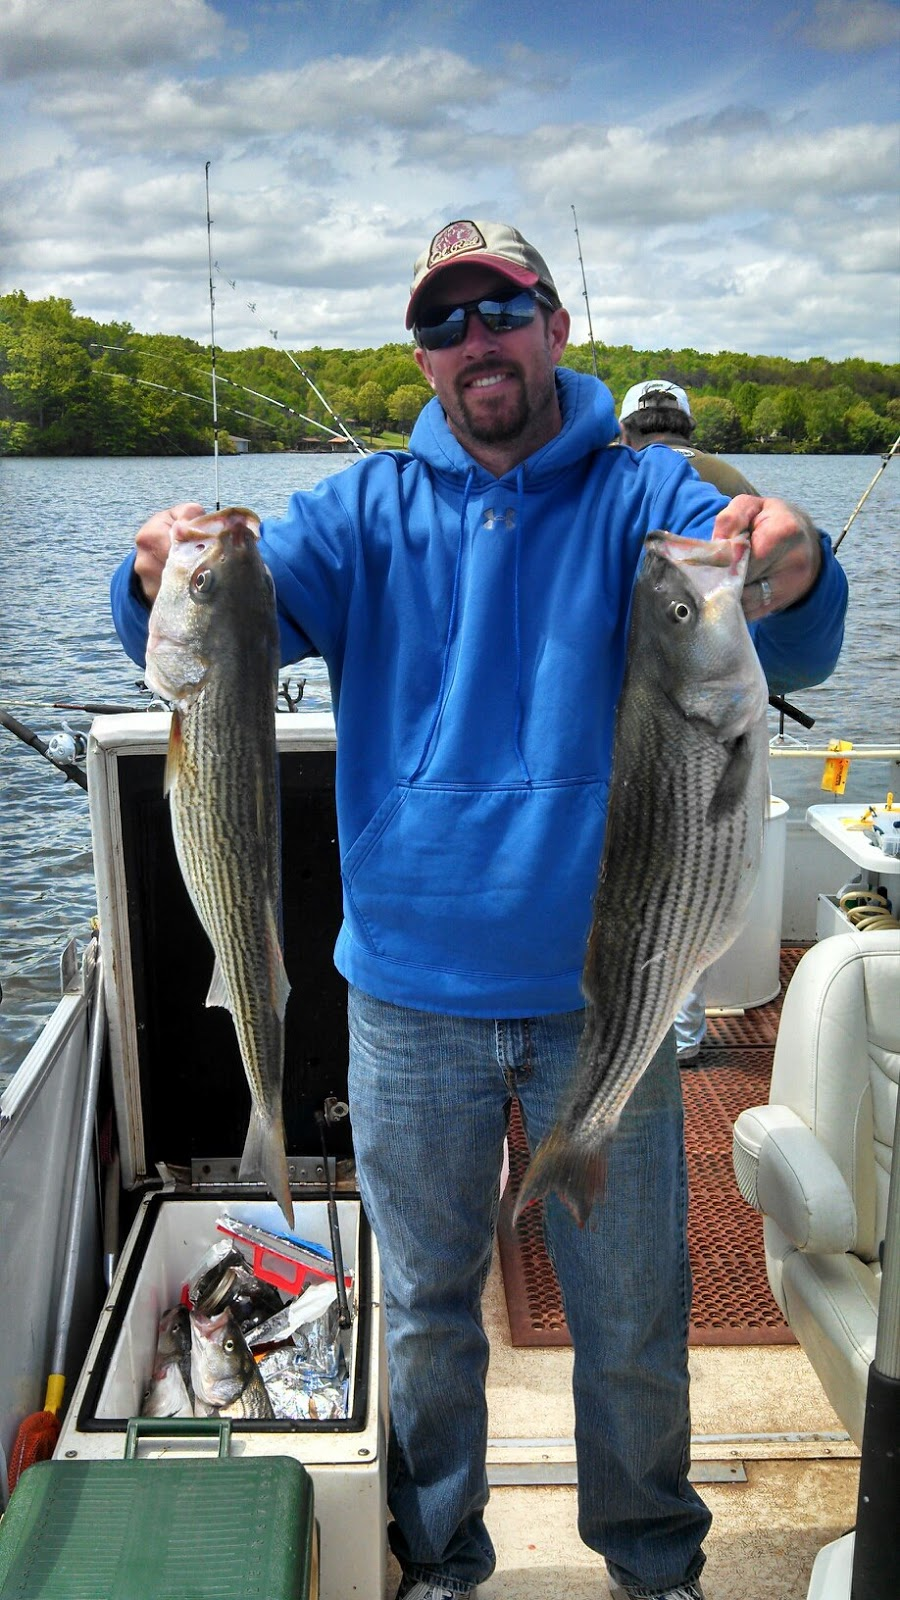 Striper report a few recent catches jim hemby guide service for Franks great outdoors fishing report